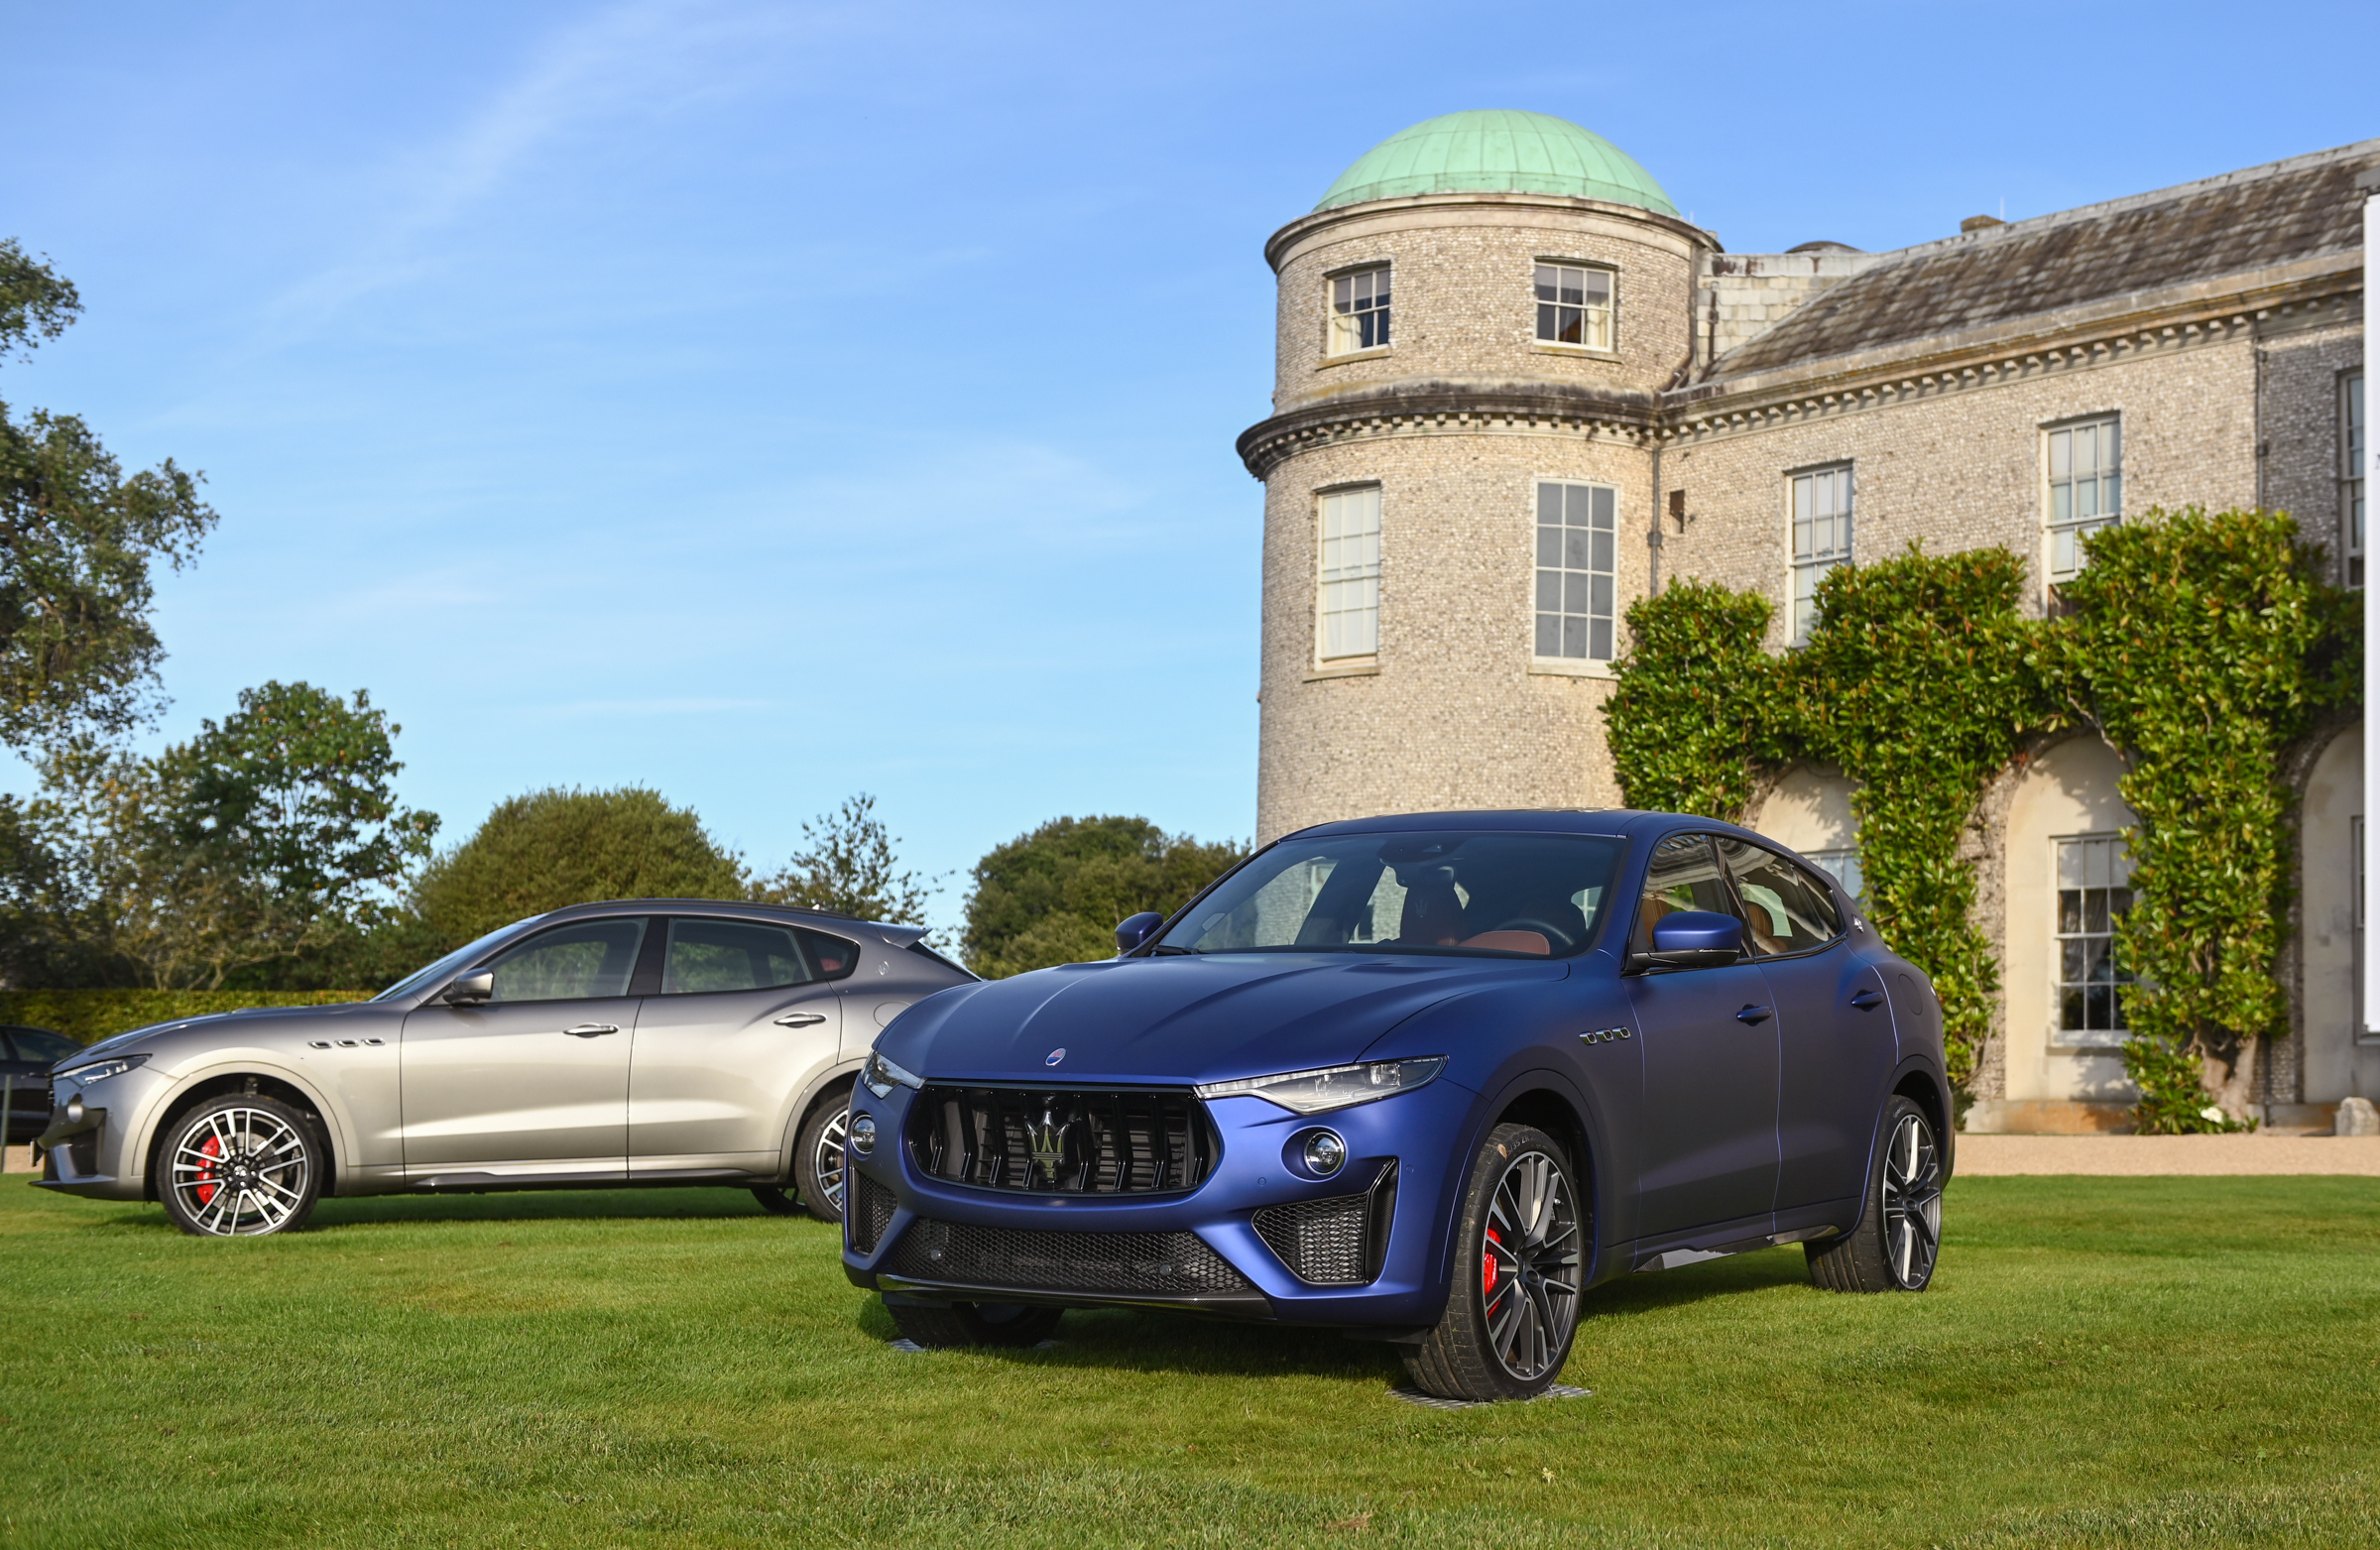 Maserati at Goodwood Revival - Goodwood House